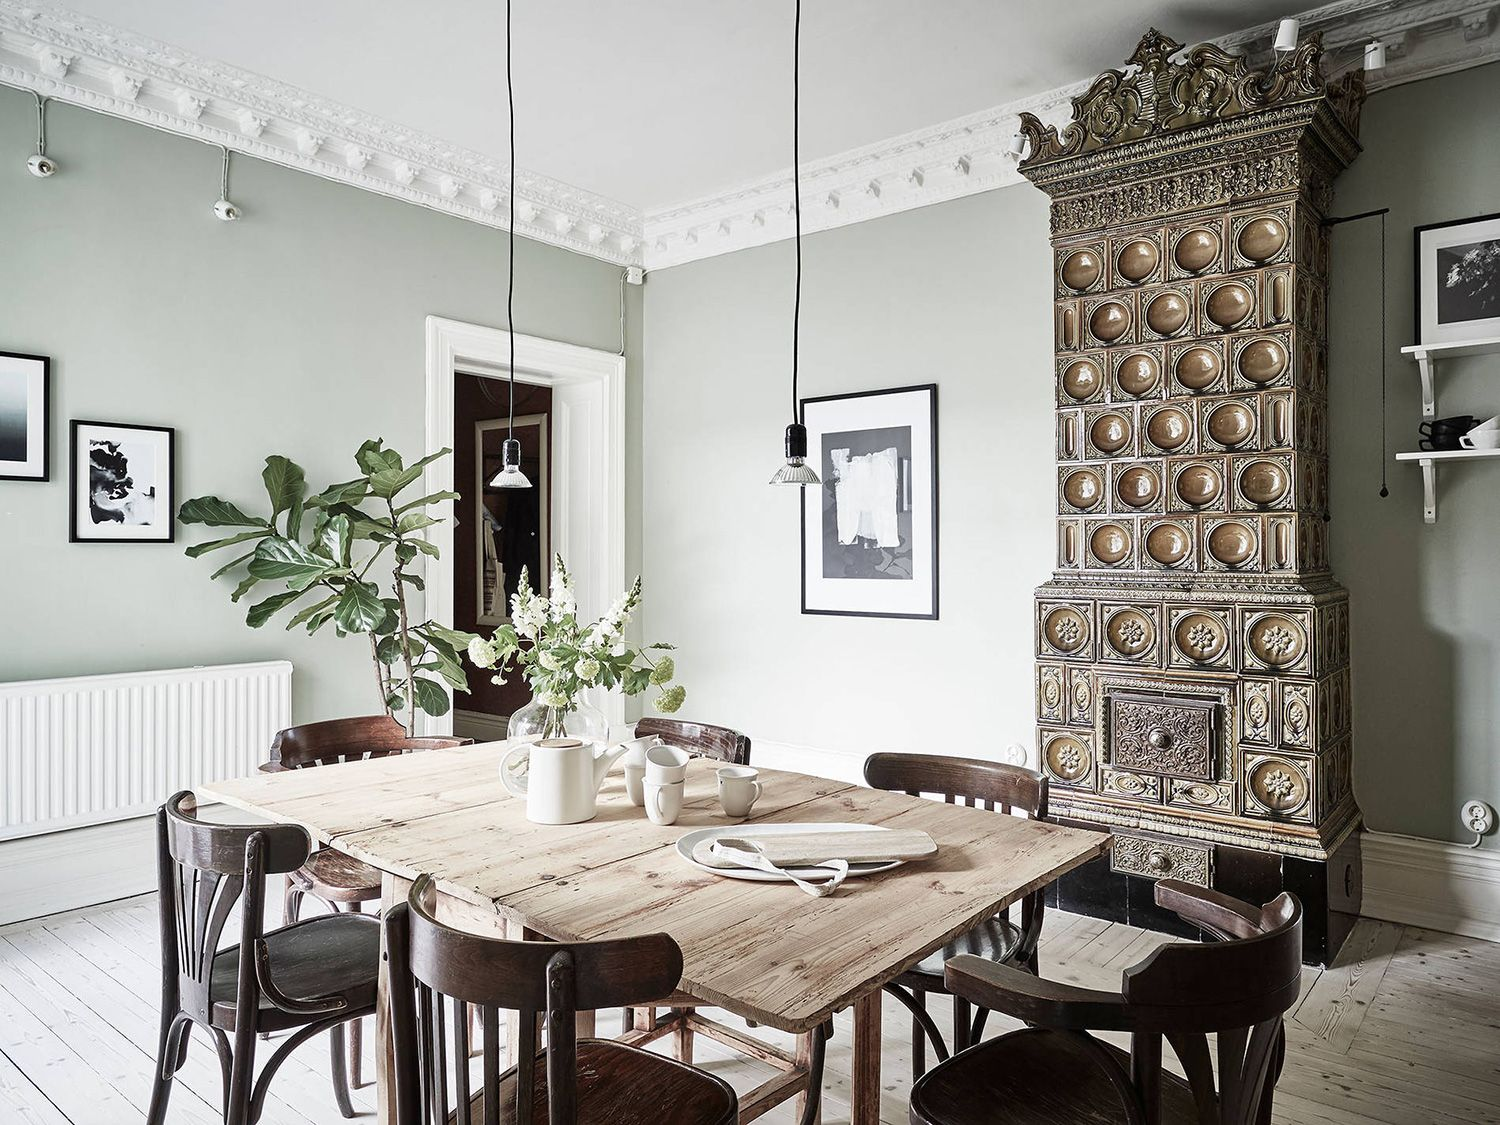 A swedish home with neutral colors rue dining rooms pinterest